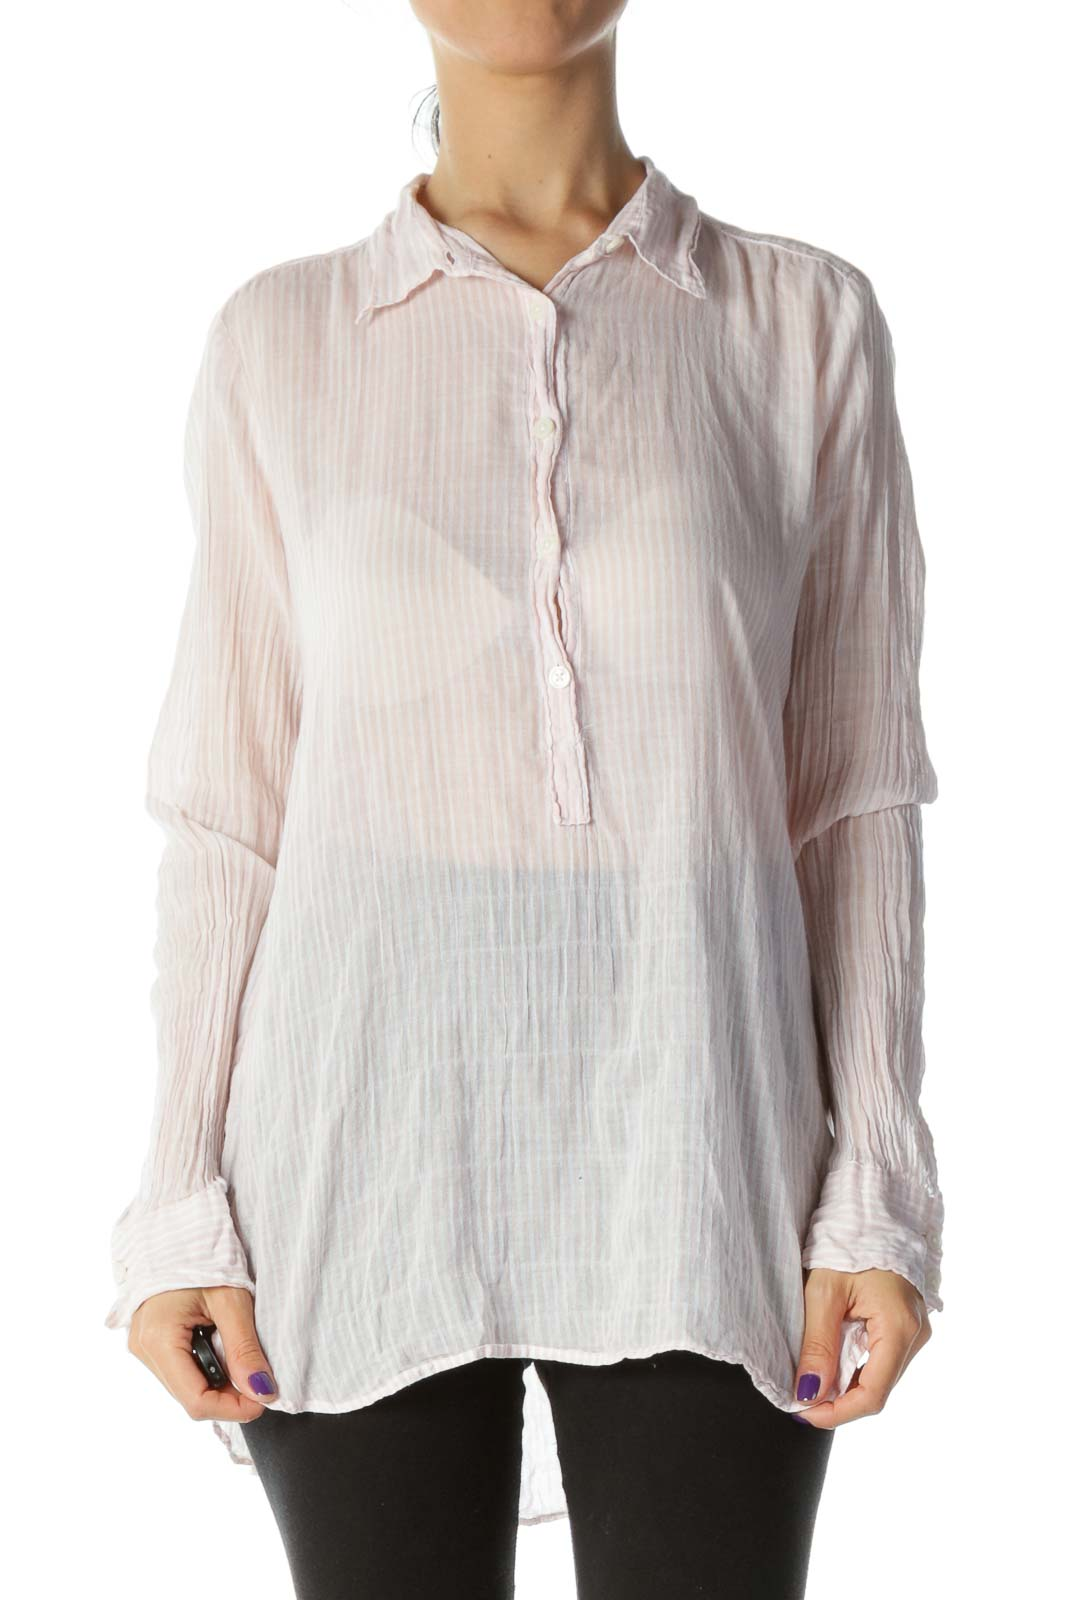 Pink & White Striped Long-Sleeve Light-Weight Button-Down Shirt